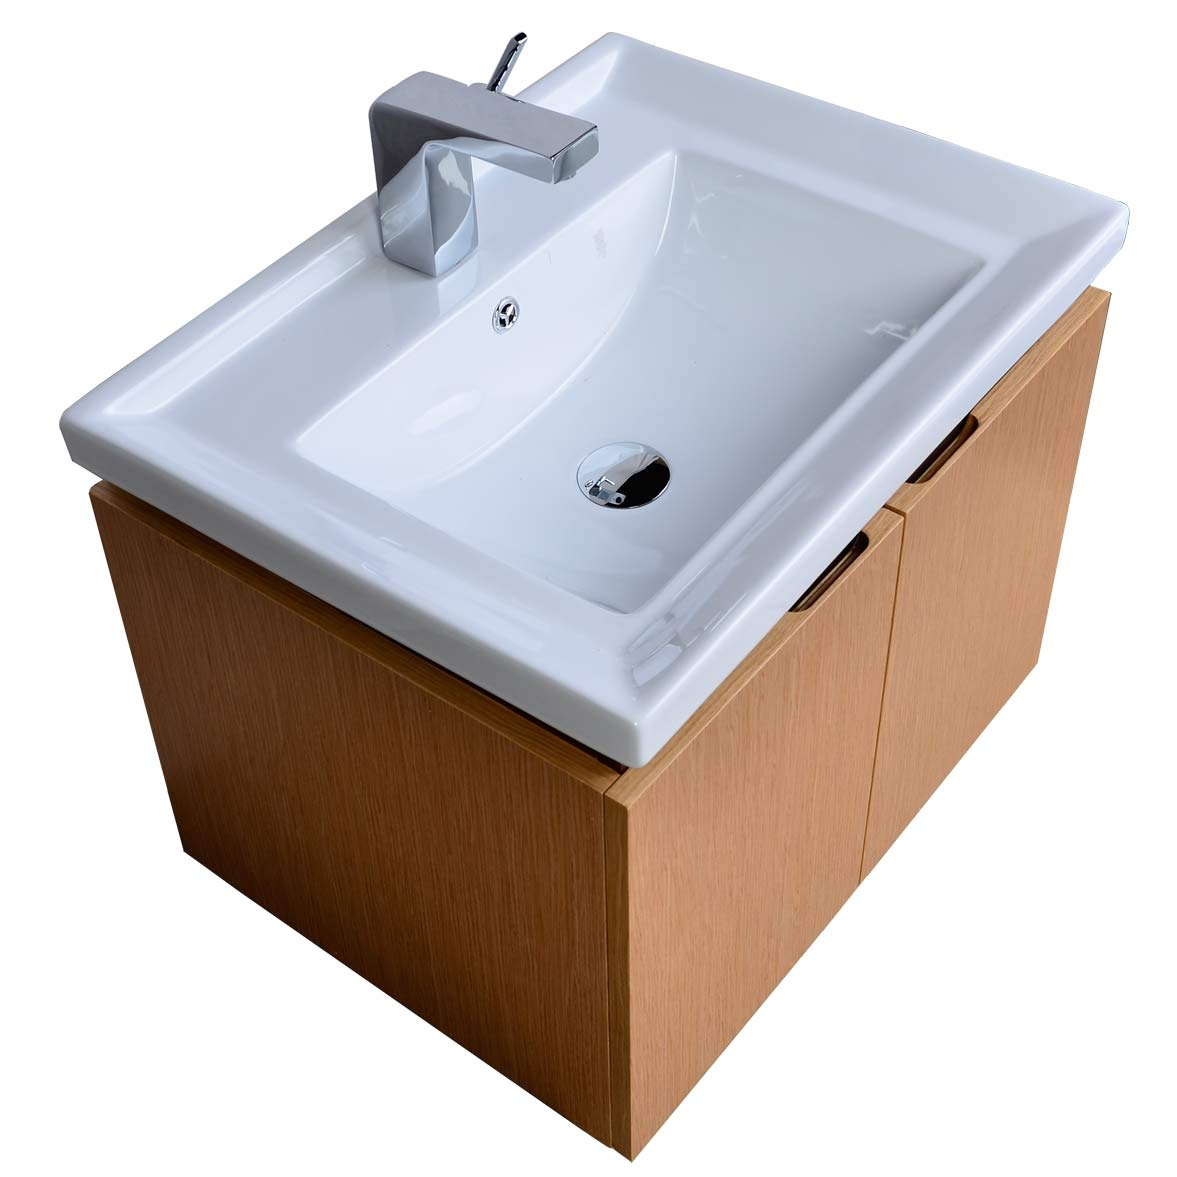 Bathroom vanity san francisco - Discount Quality Bathroom Vanity San Francisco Bay Area